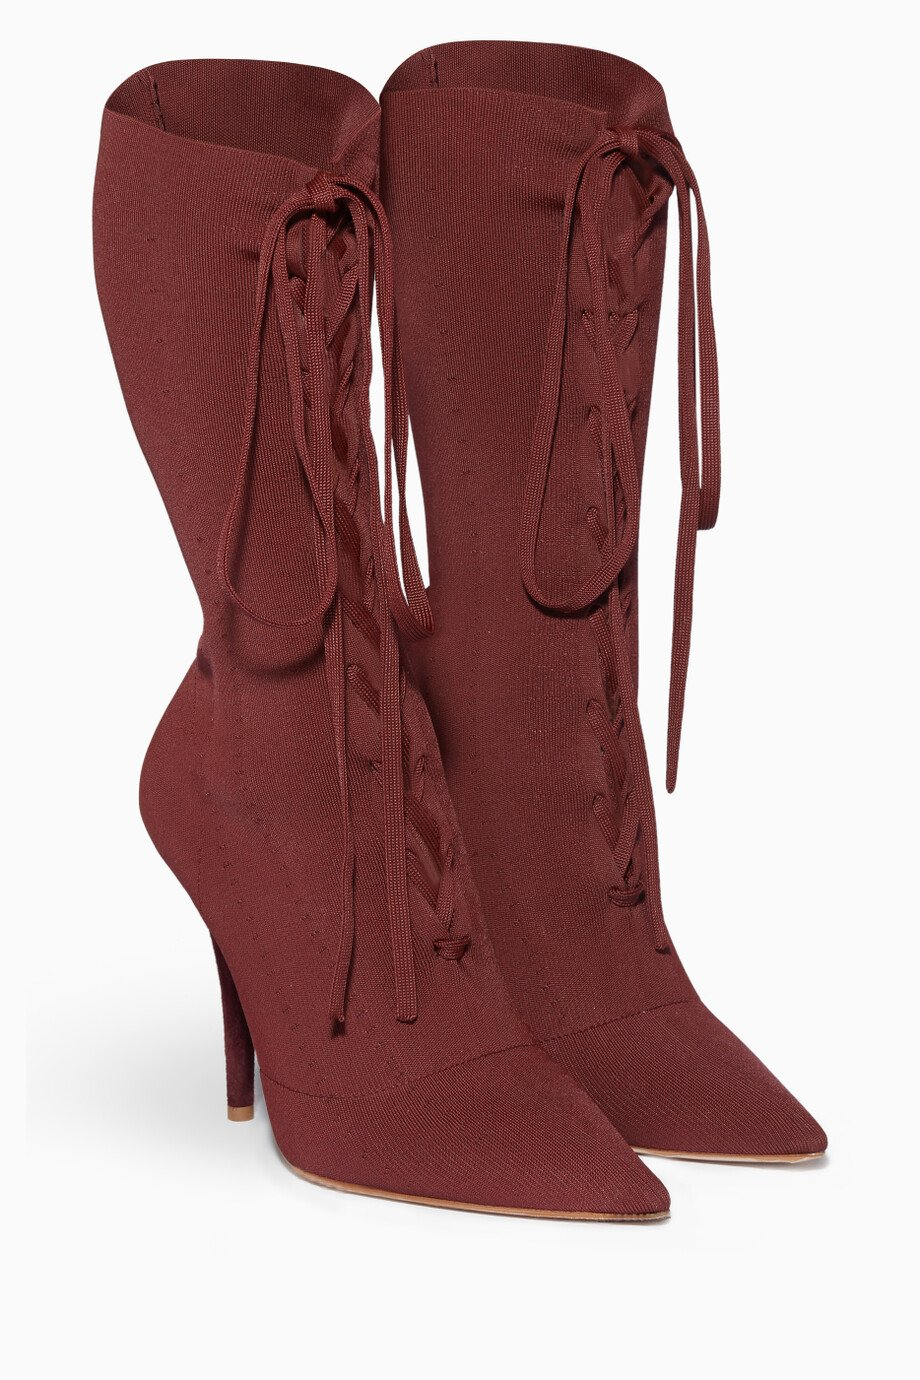 5fdd9311e Shop Yeezy Red Burgundy Lace-Up Boots for Women